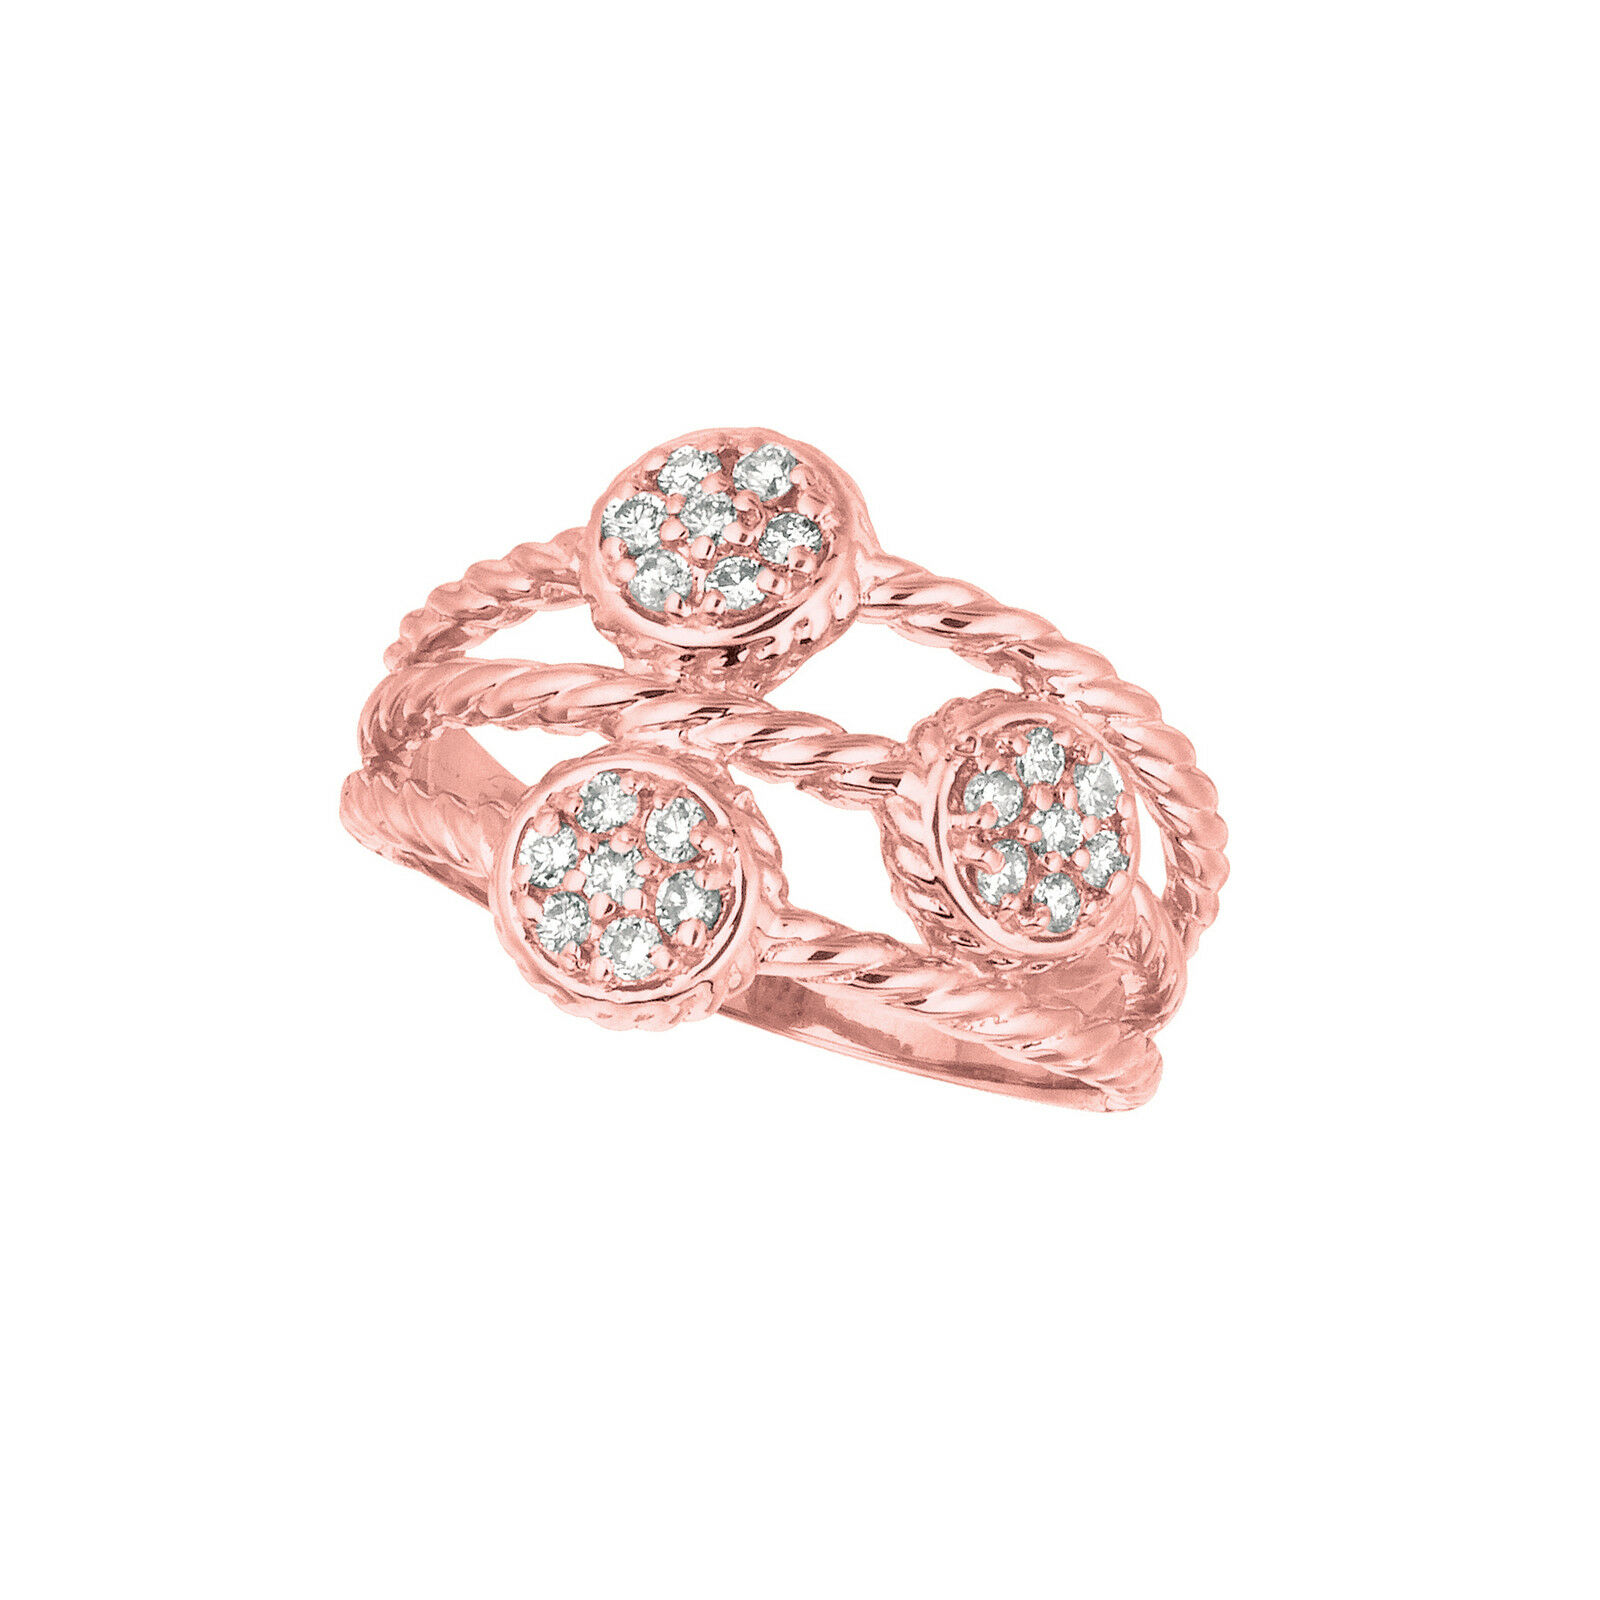 0.34 CT Diamond ring Set In 14K pink gold IDJR6886PD